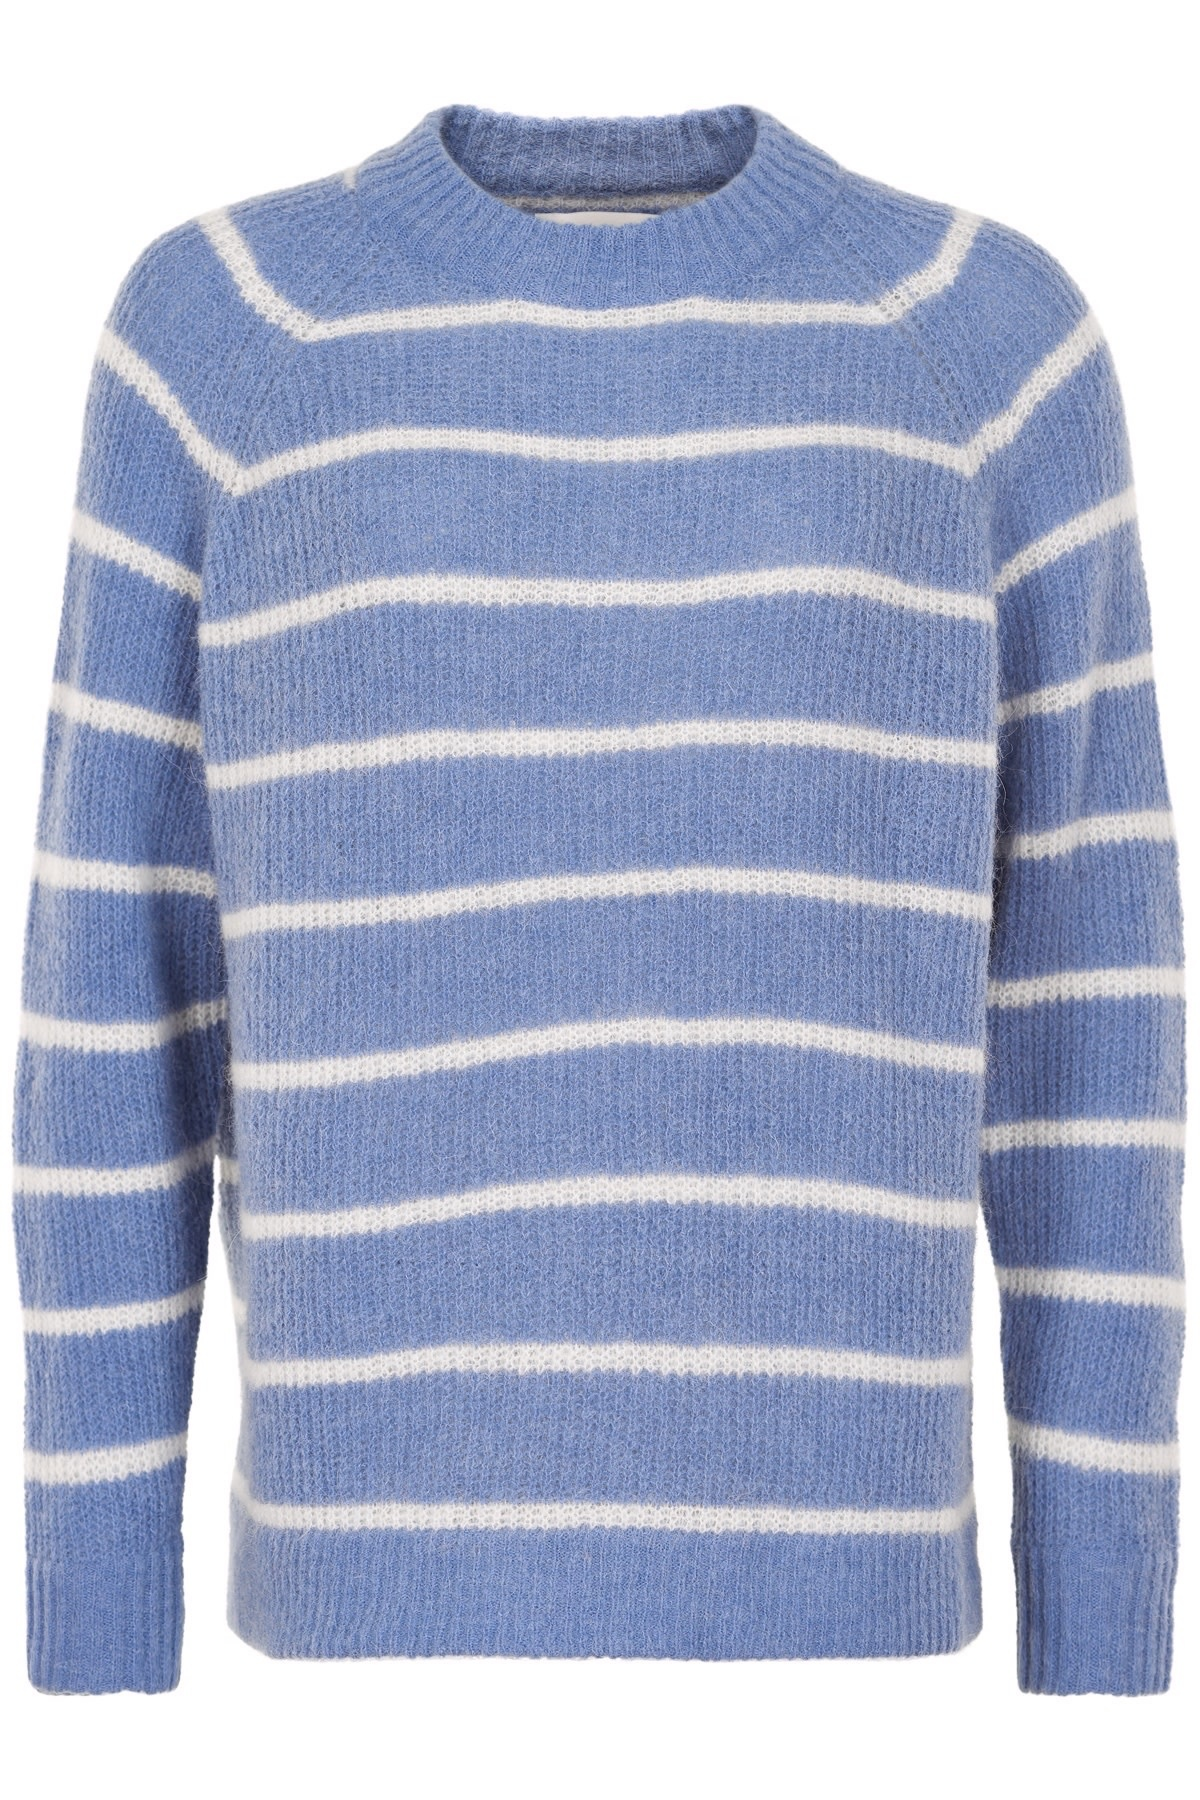 AndLess Bambina Pullover - Stripes Blauw/wit